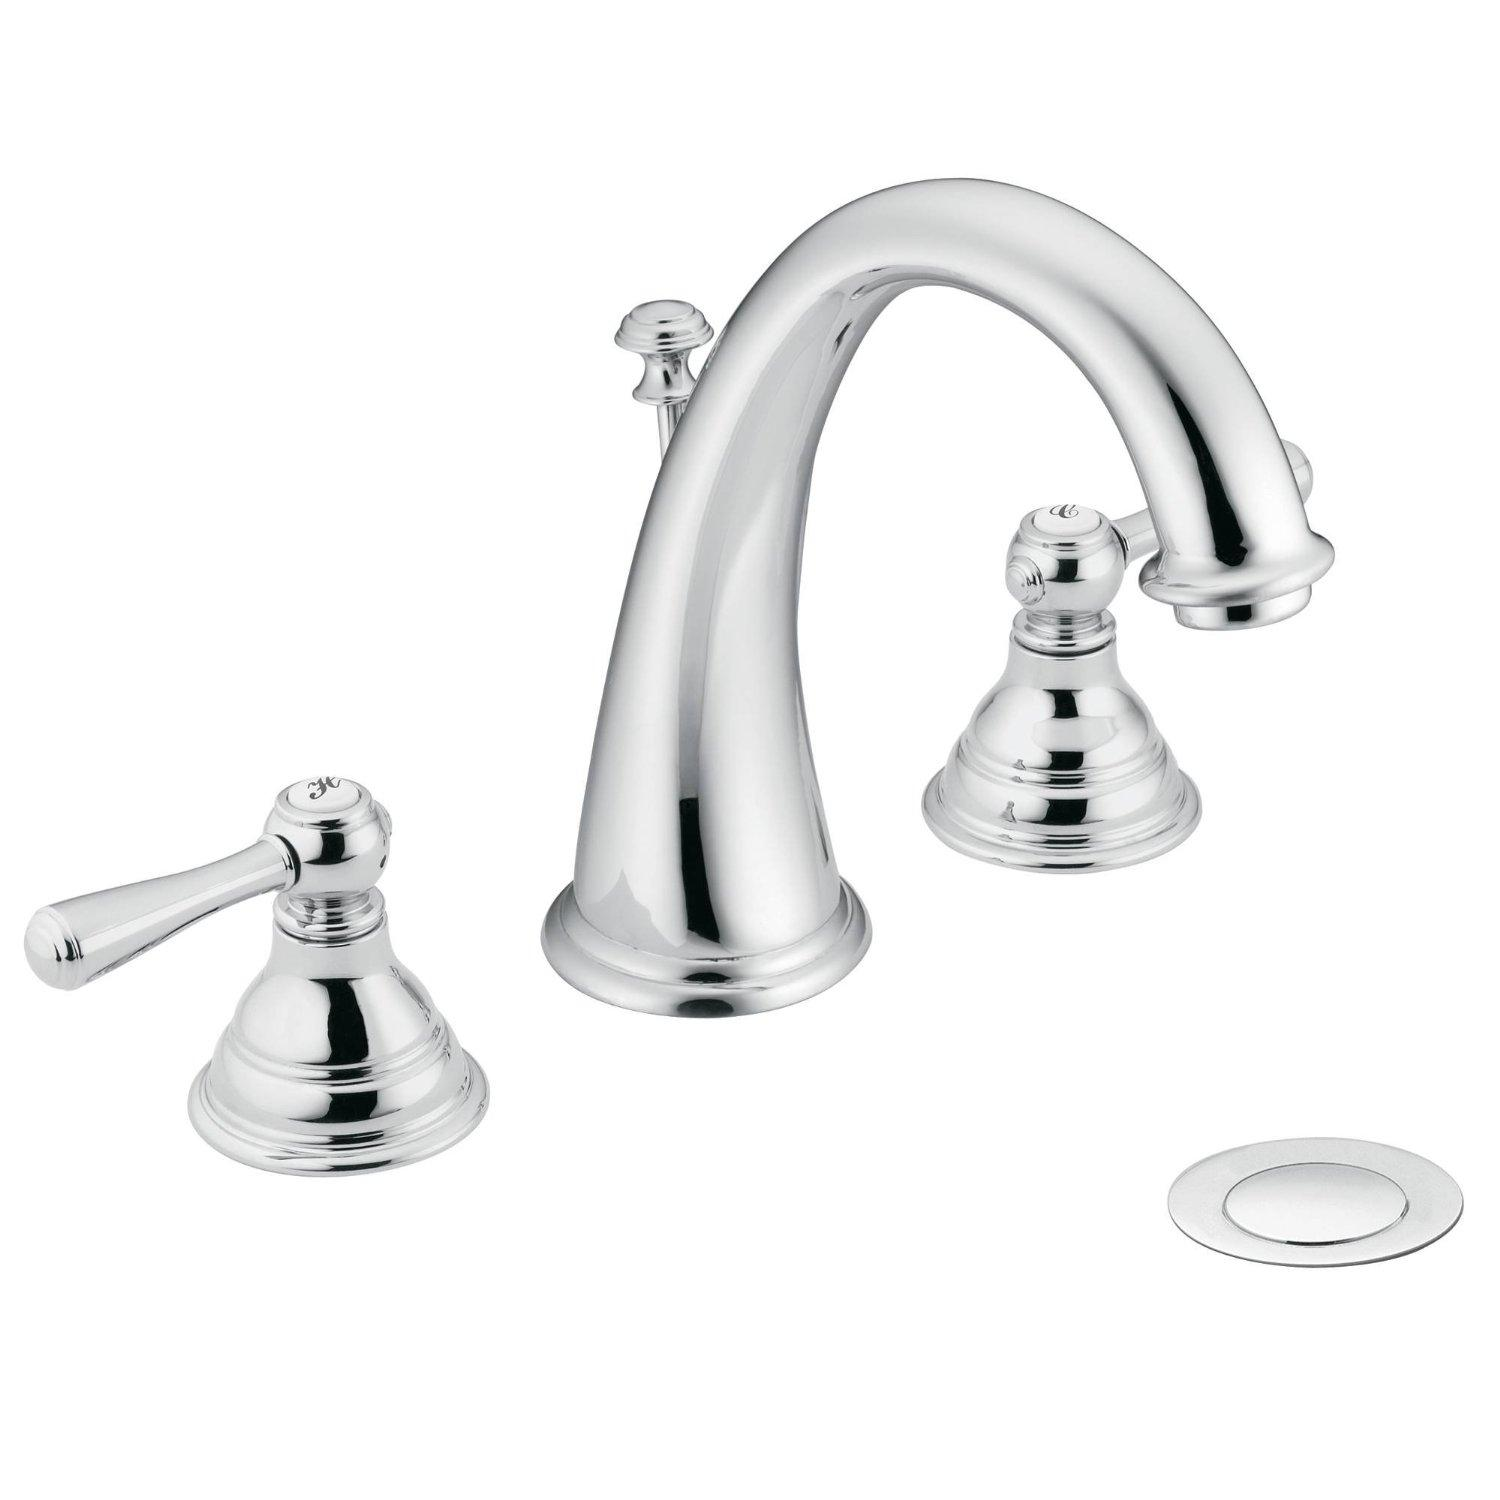 Moen T6125 Kingsley Two Handle High Arc Widespread Bathroom Faucet